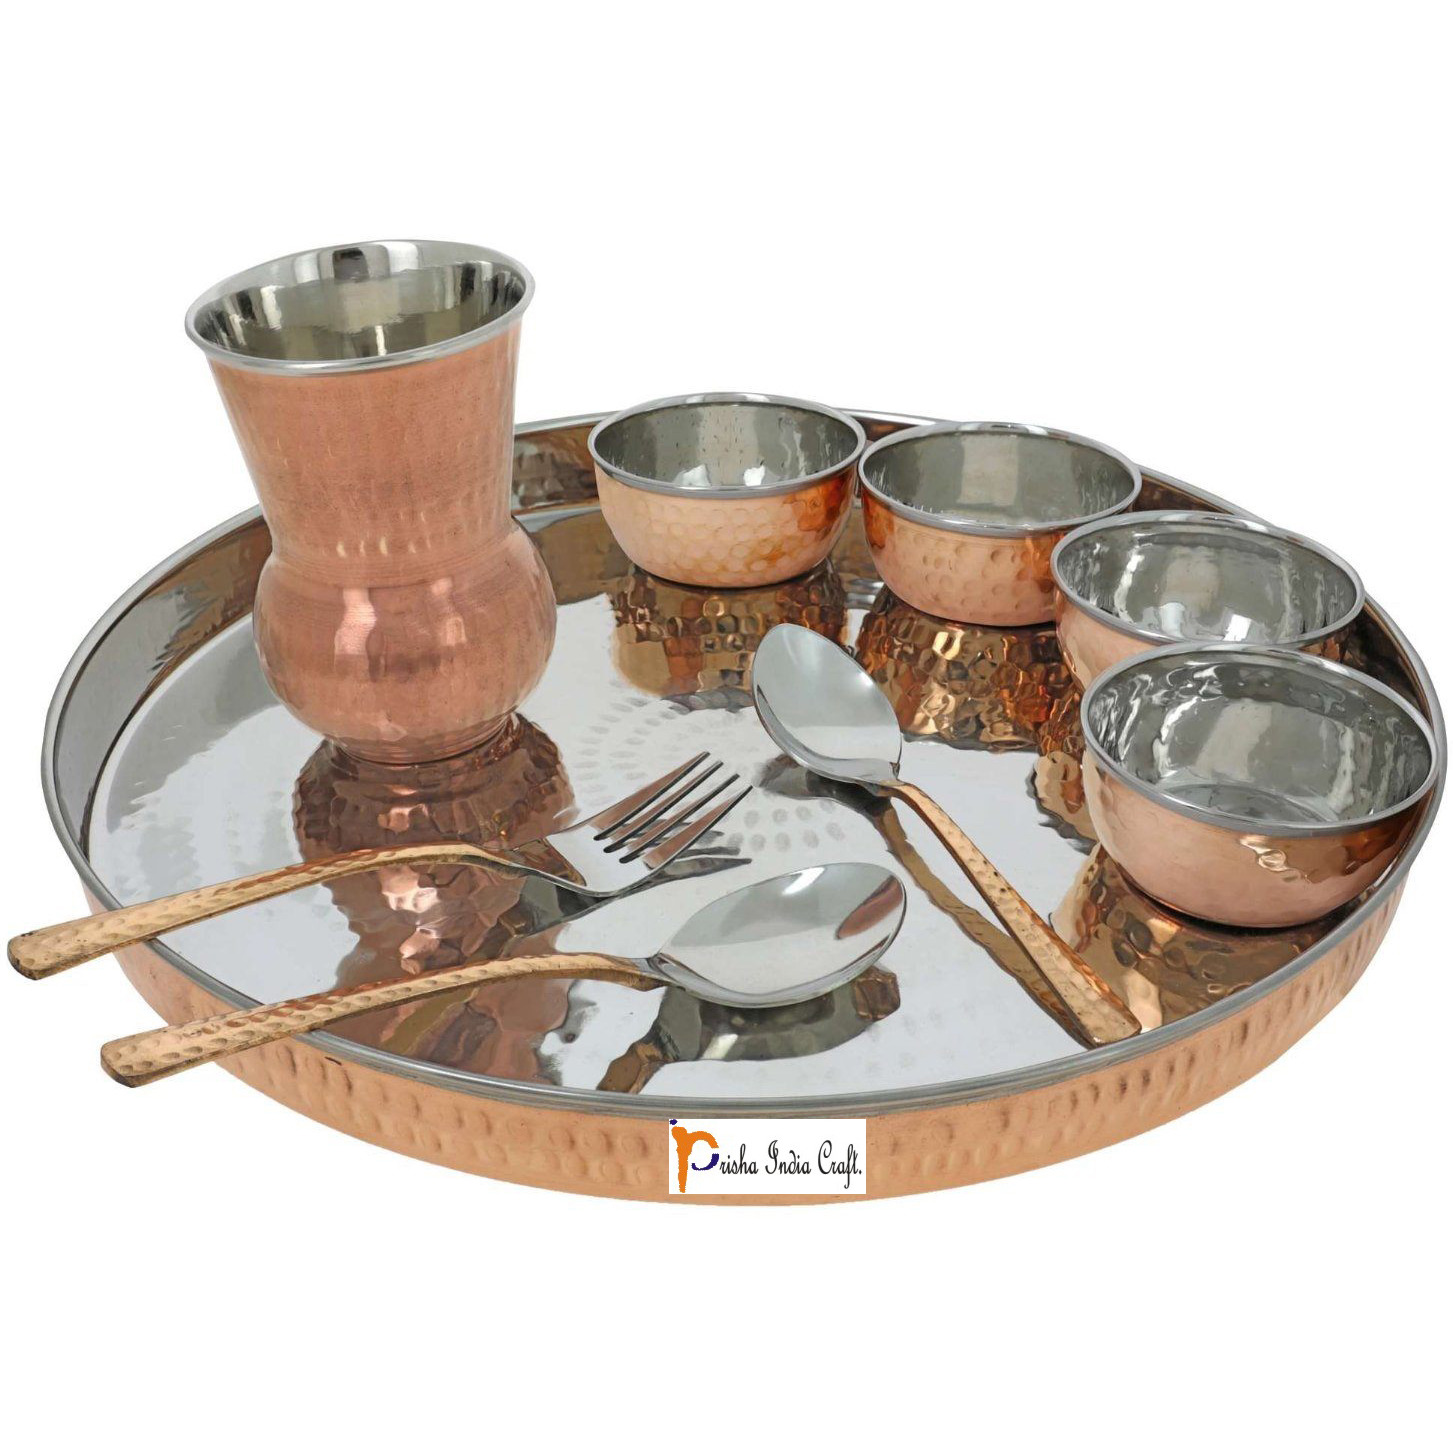 Prisha India Craft B. Set of 5 Dinnerware Traditional Stainless Steel Copper Dinner Set of Thali Plate, Bowls, Glass and Spoons, Dia 13  With 1 Pure Copper Maharaja Pitcher Jug - Christmas Gift